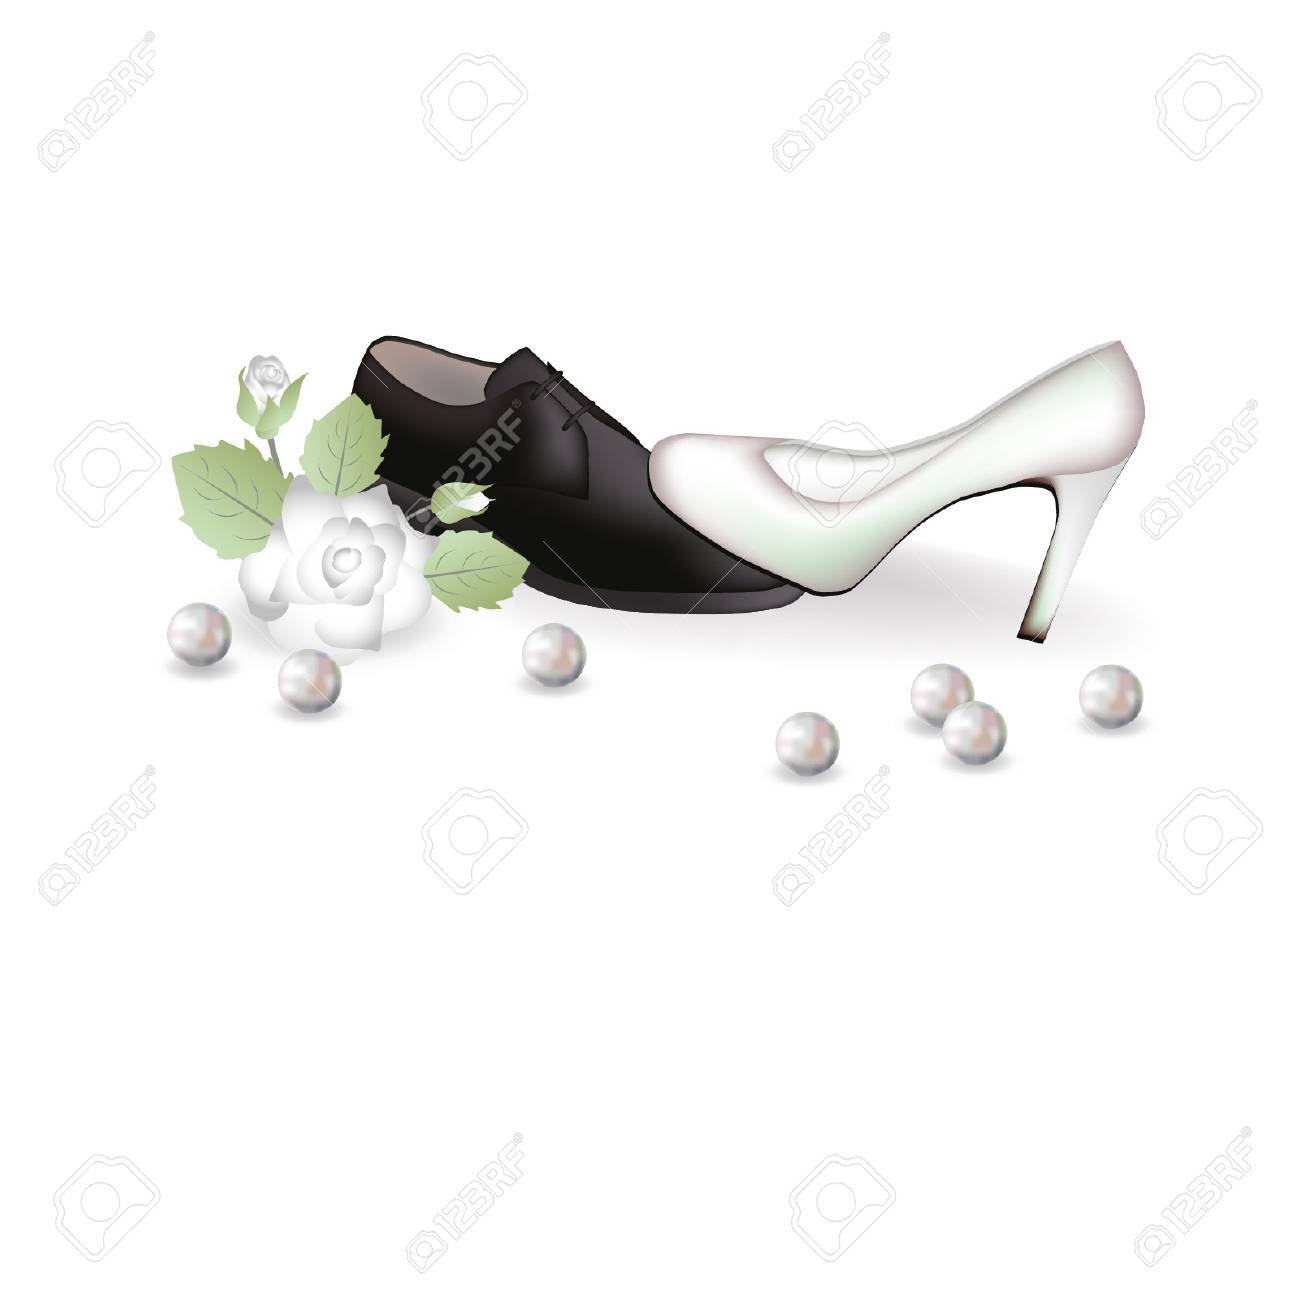 Wedding shoes and a rose illustration.